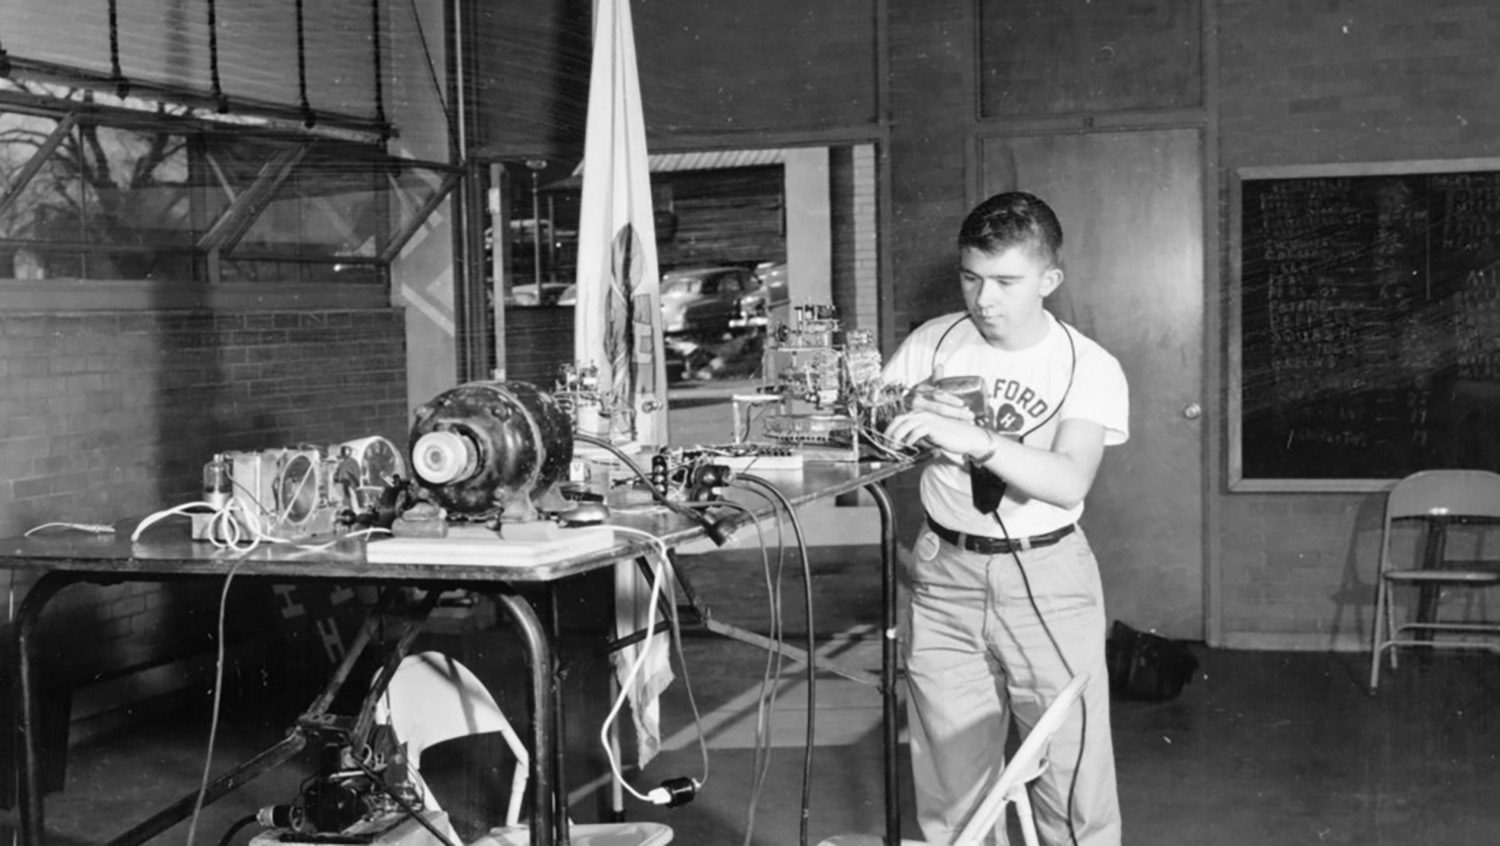 Boy with electrical experiment.